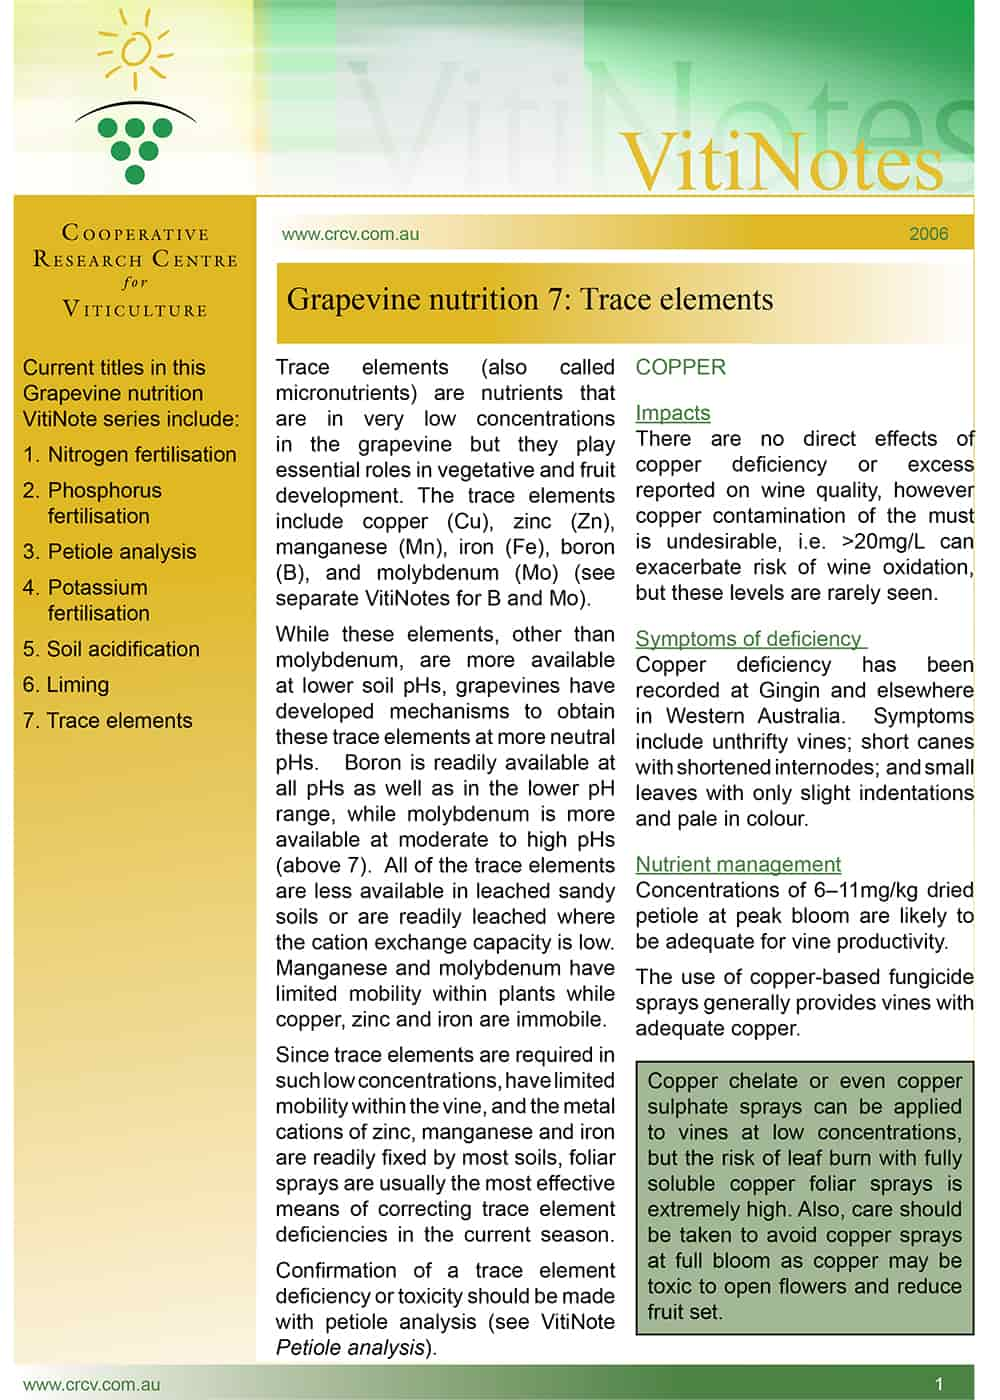 Grapevine nutrition 7: Trace elements